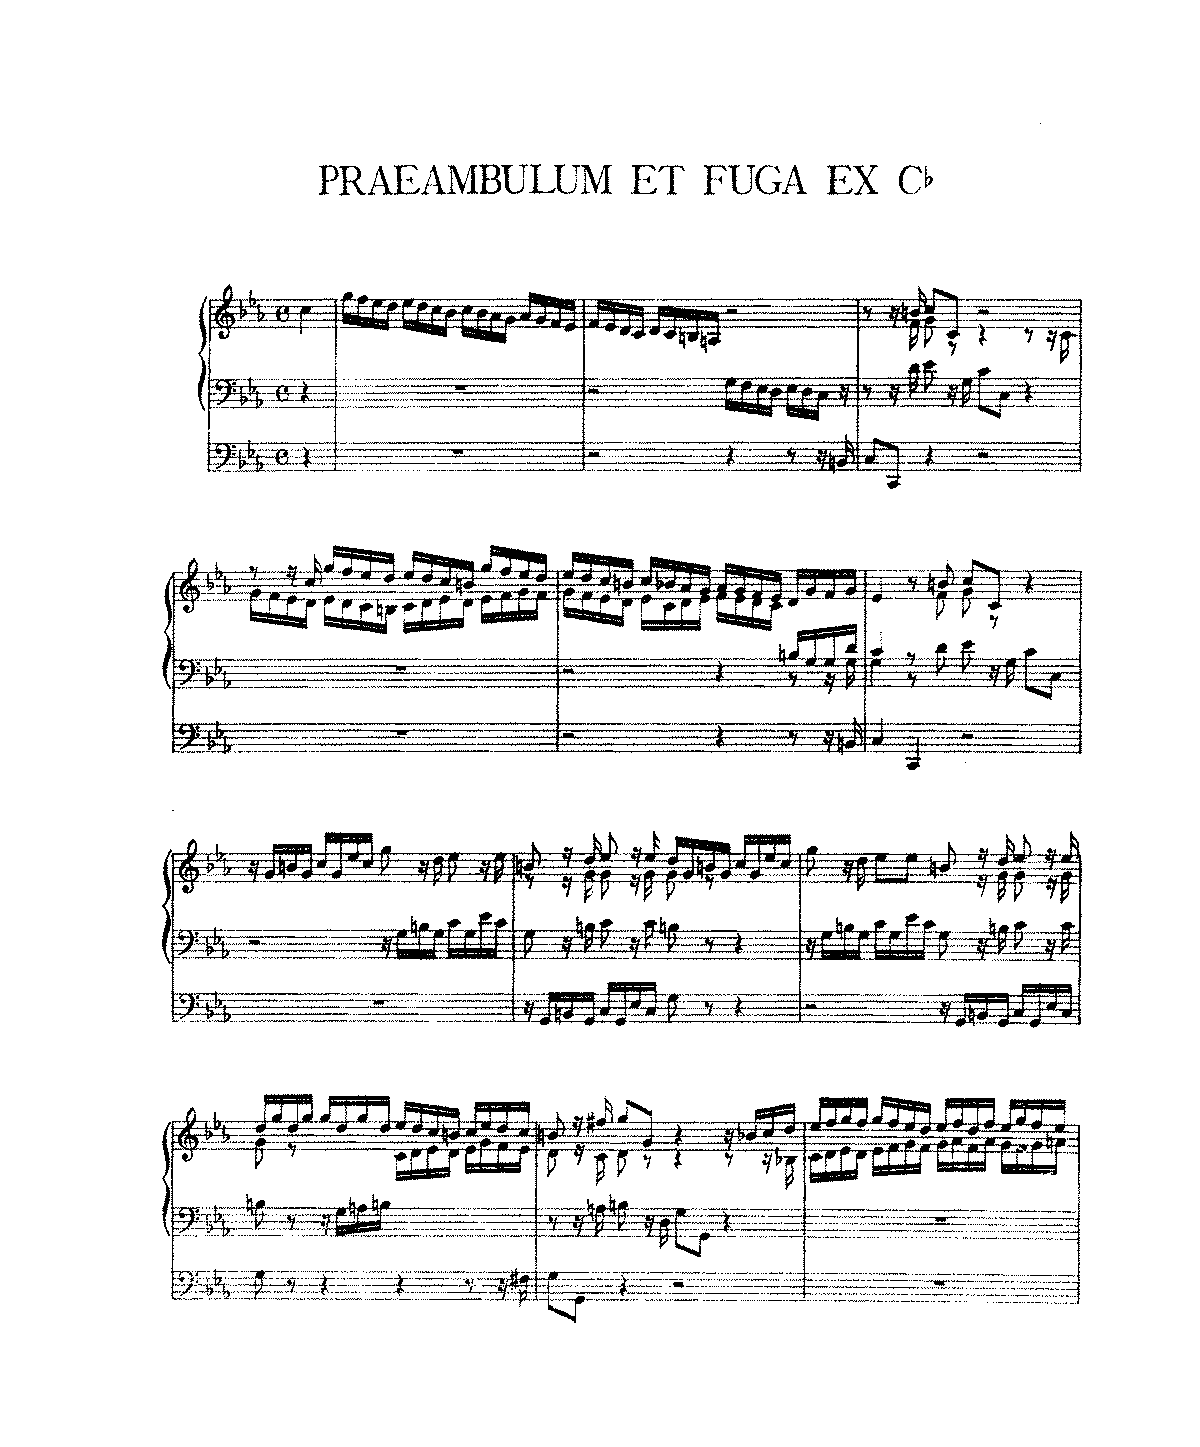 Lubeck - Preambulum et fuga in c minor.pdf